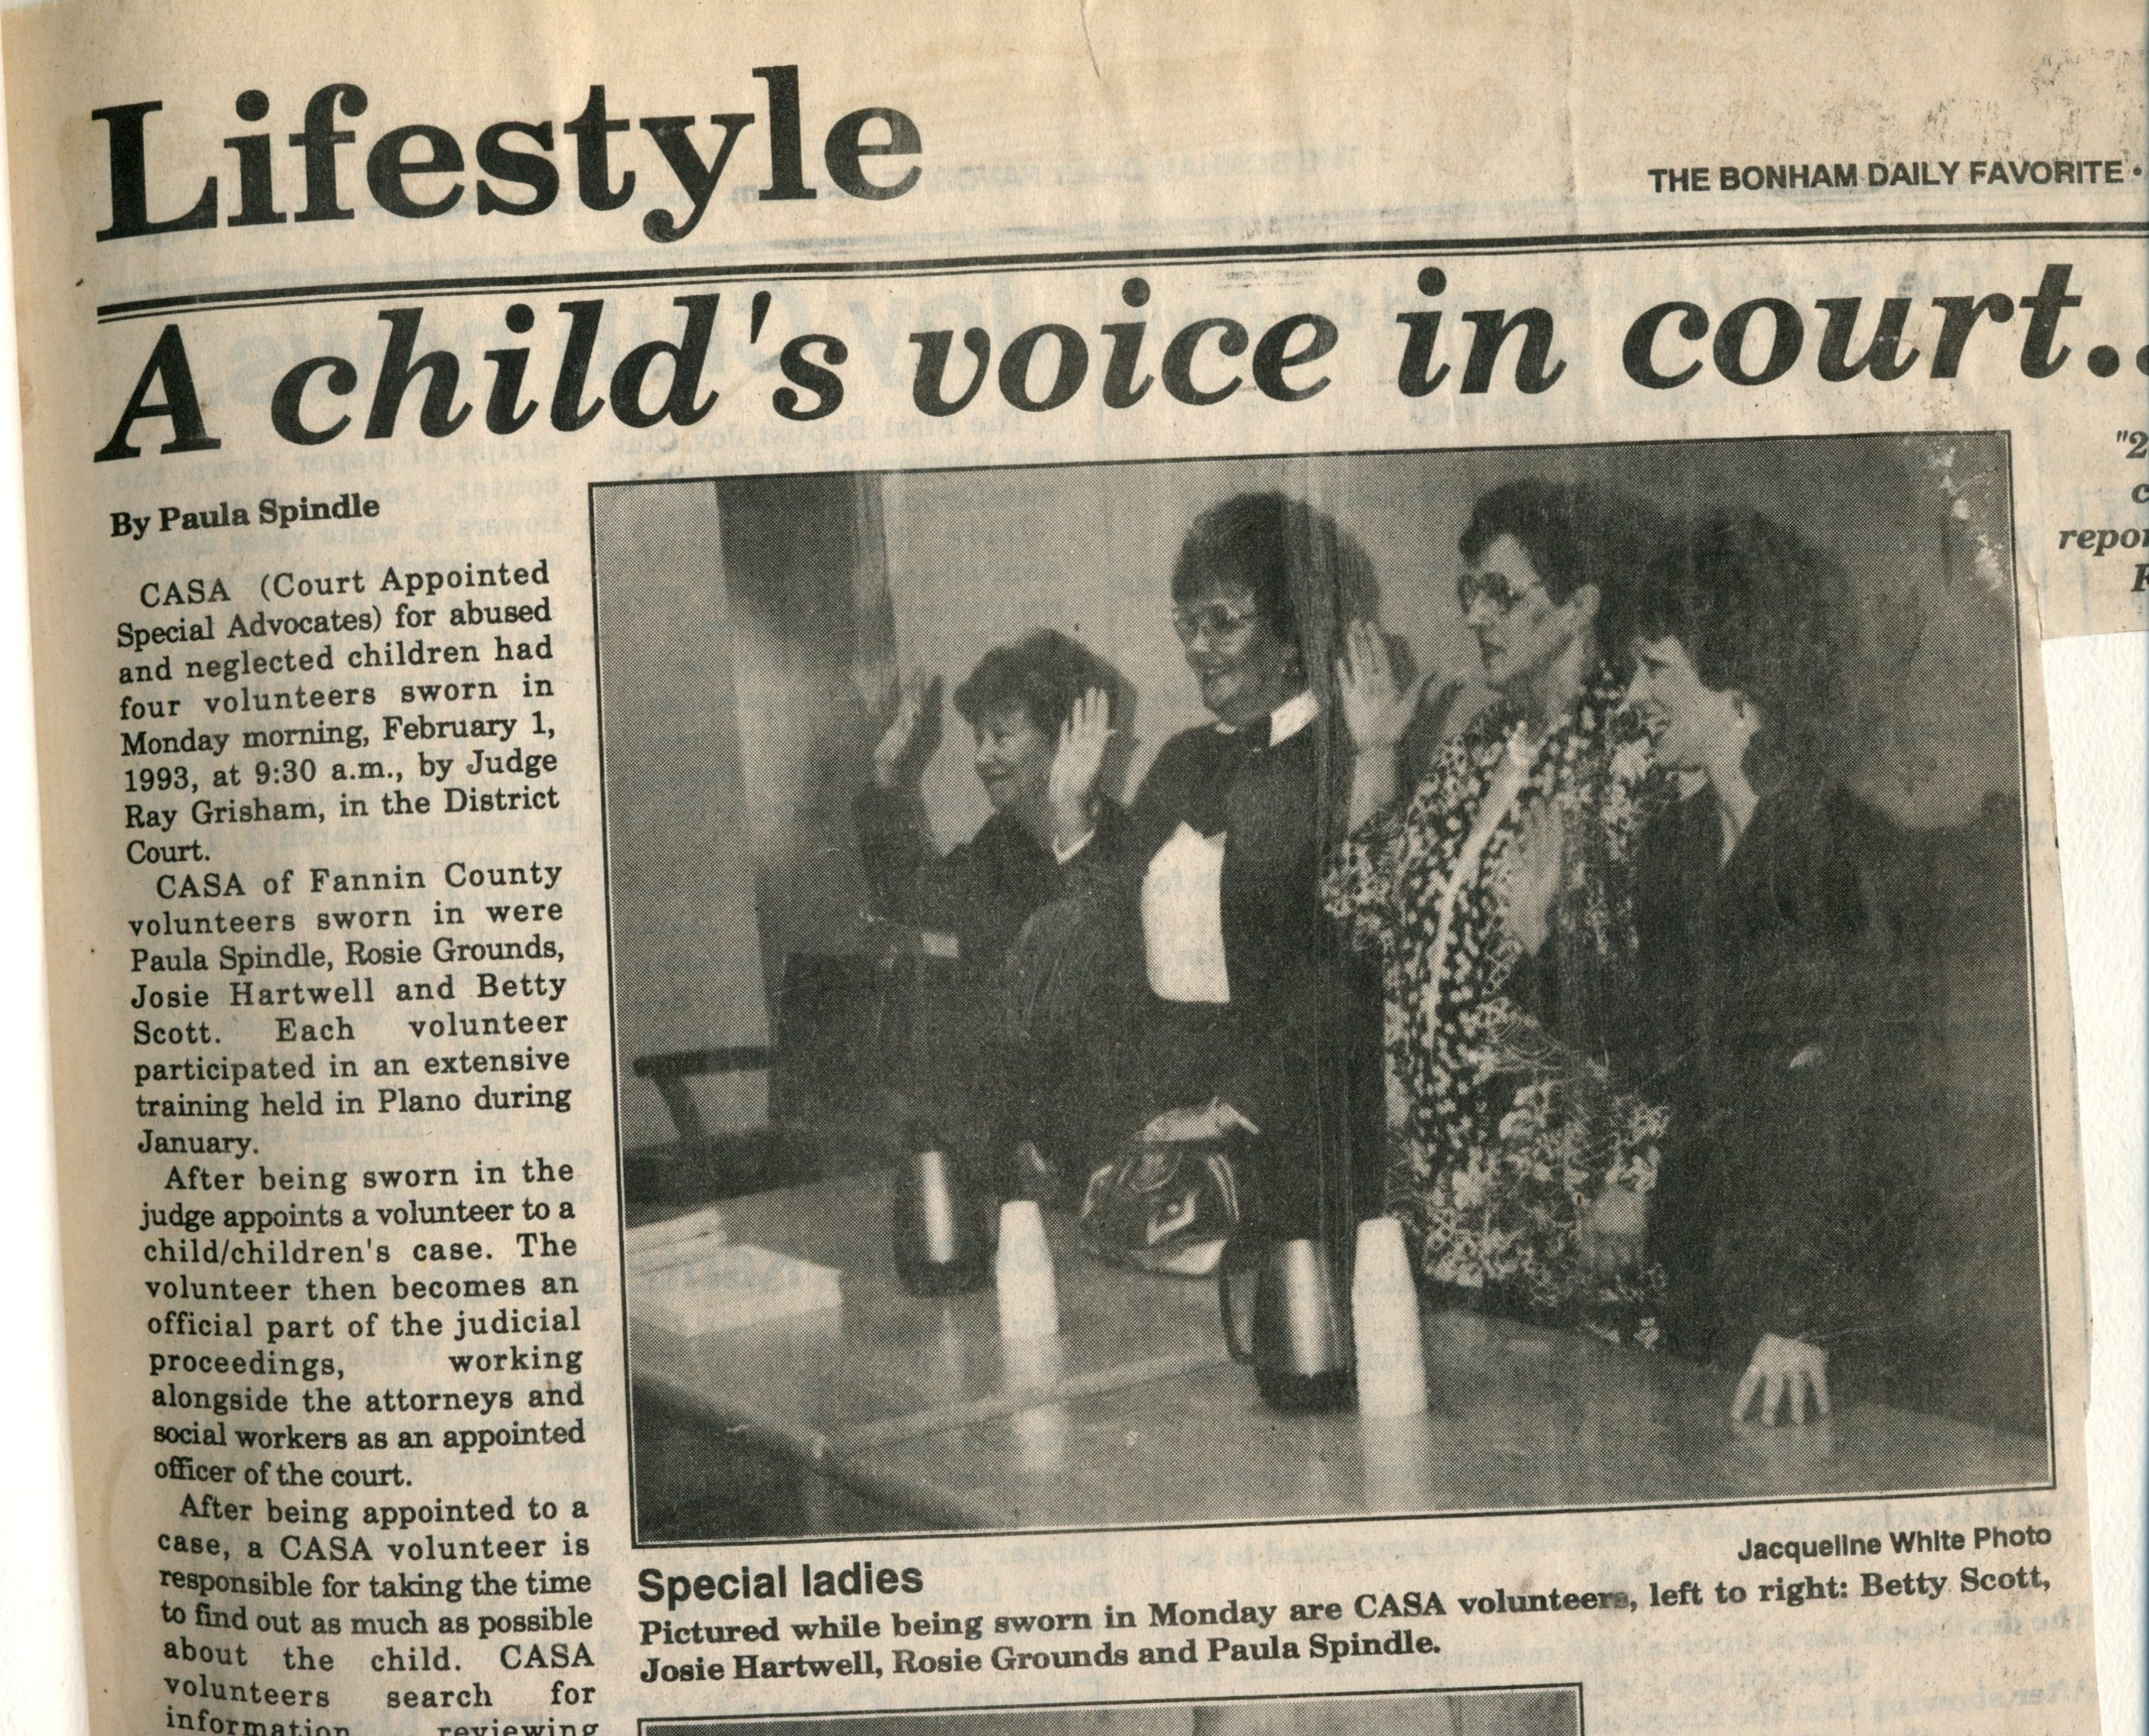 February 1, 1993 - our first class of CASA volunteers were sworn-in